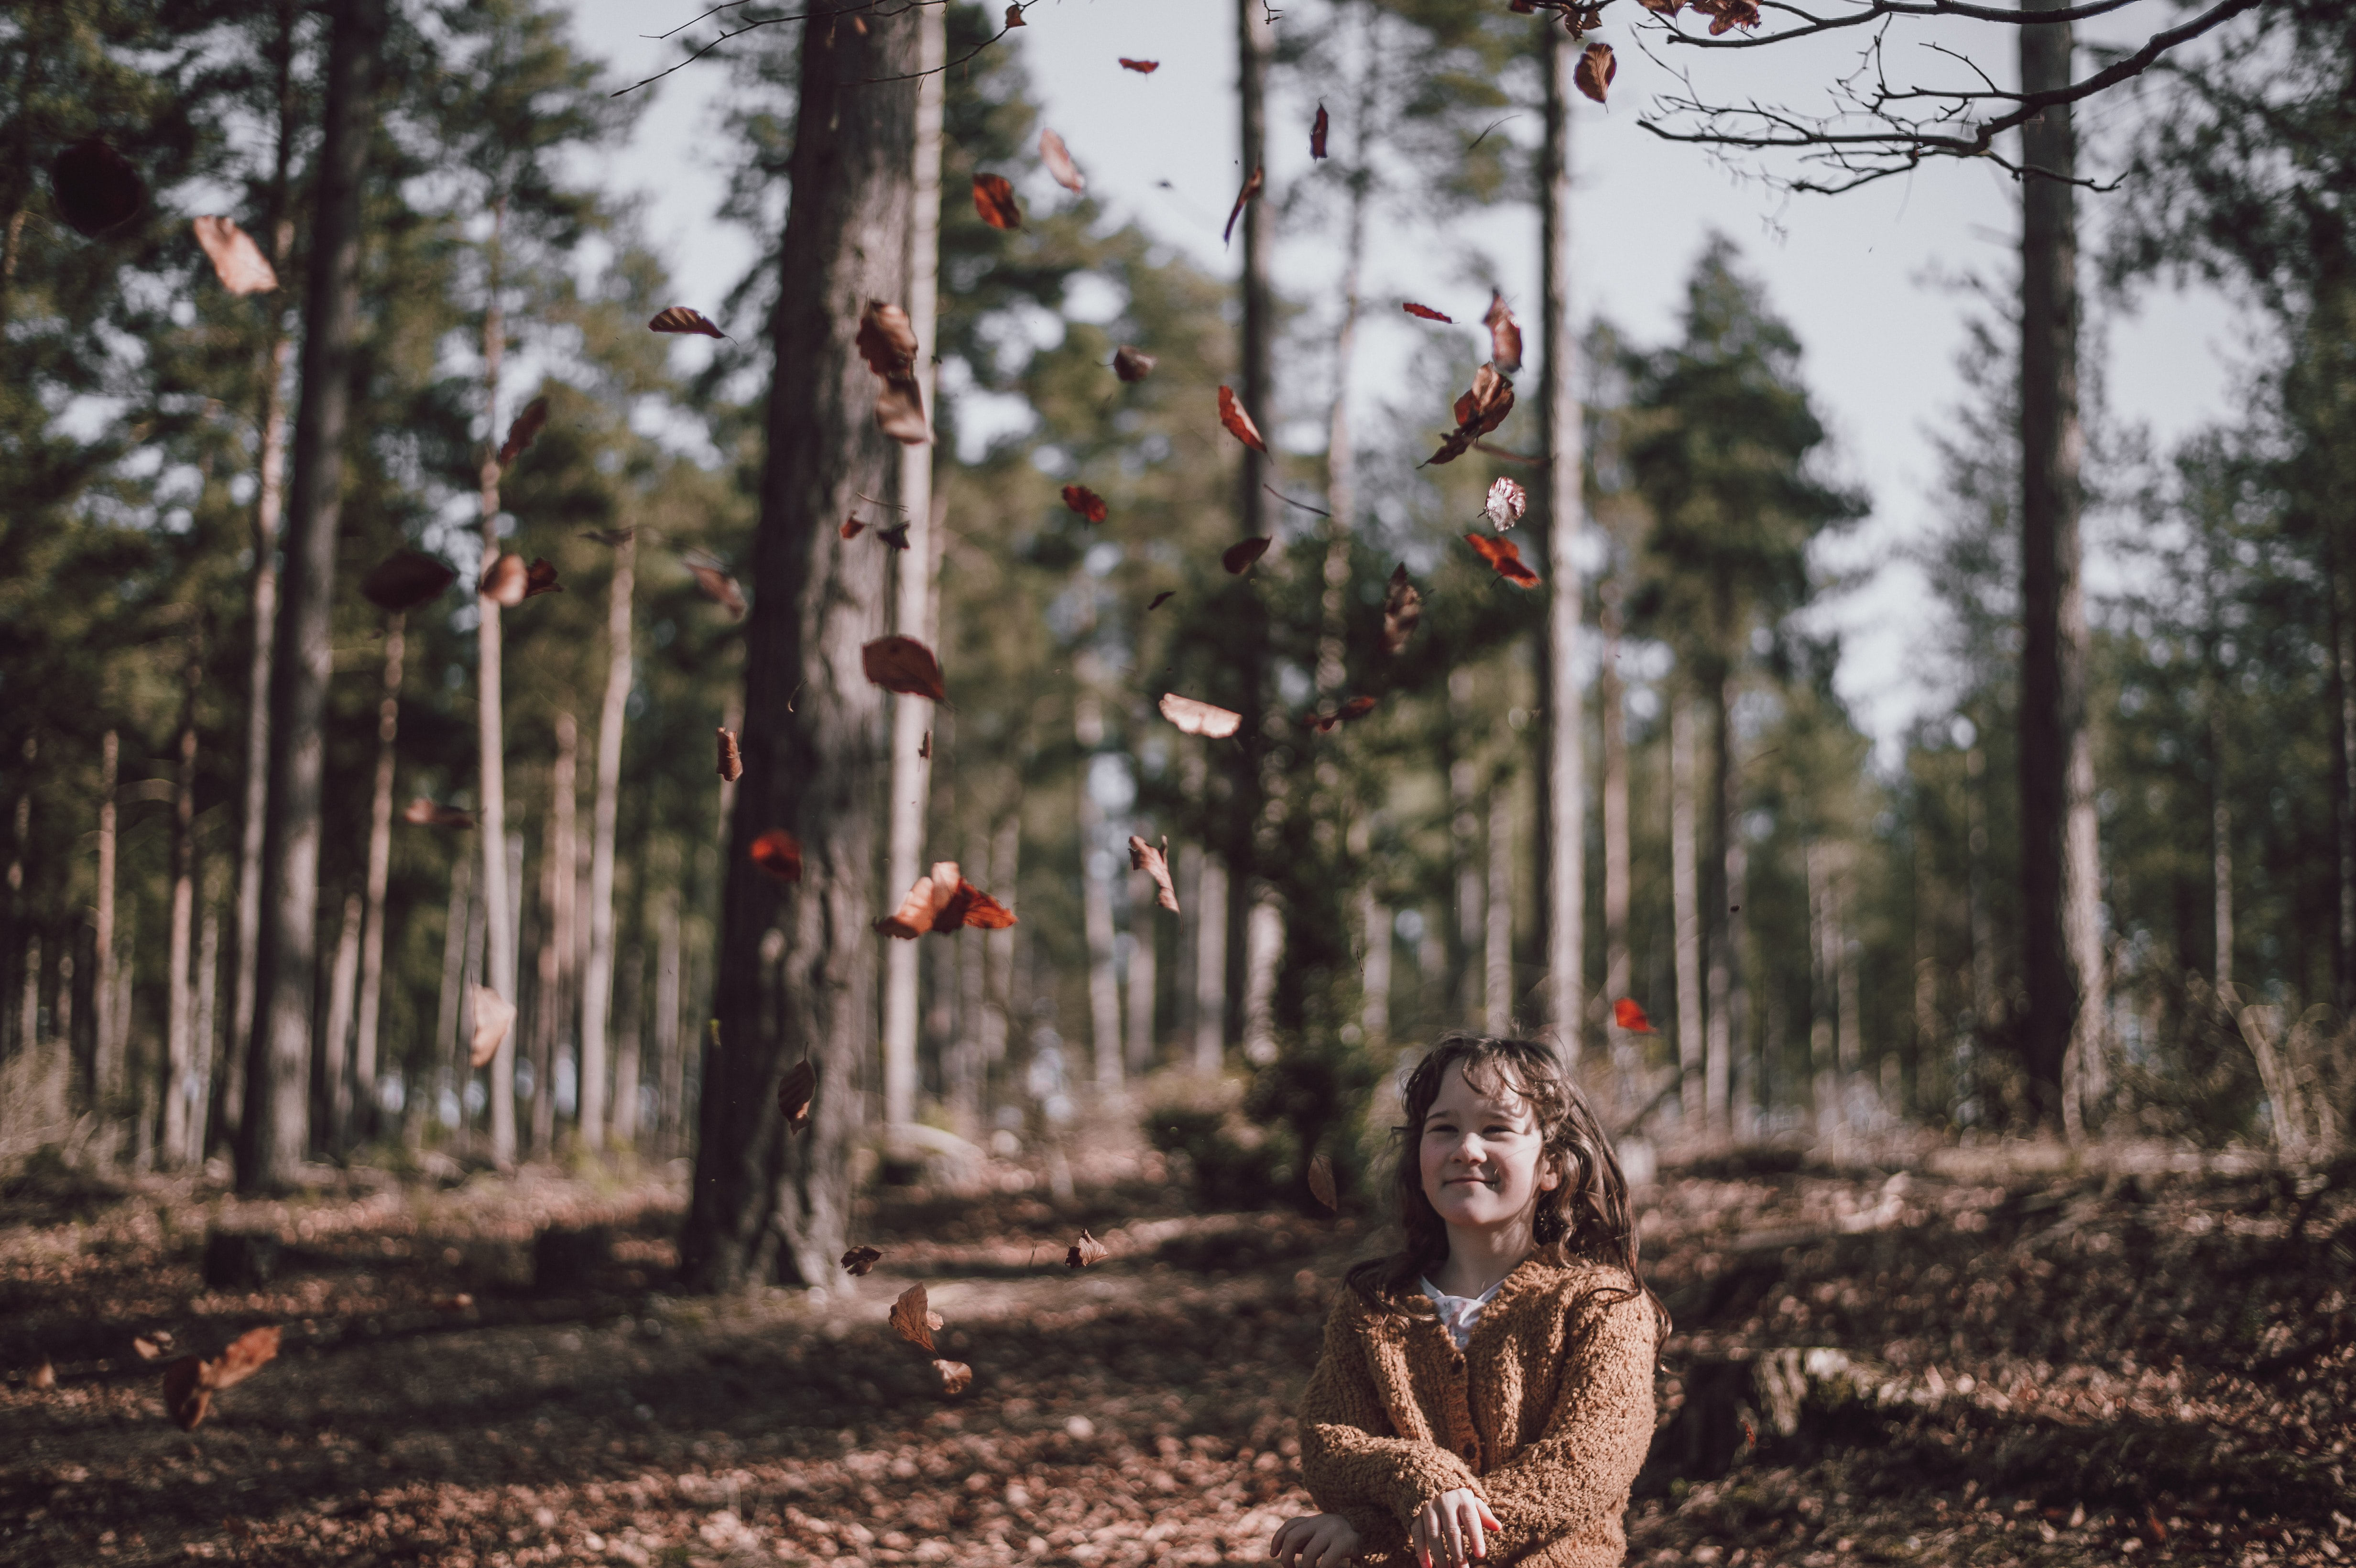 A girl throwing autumn leaves up in the air